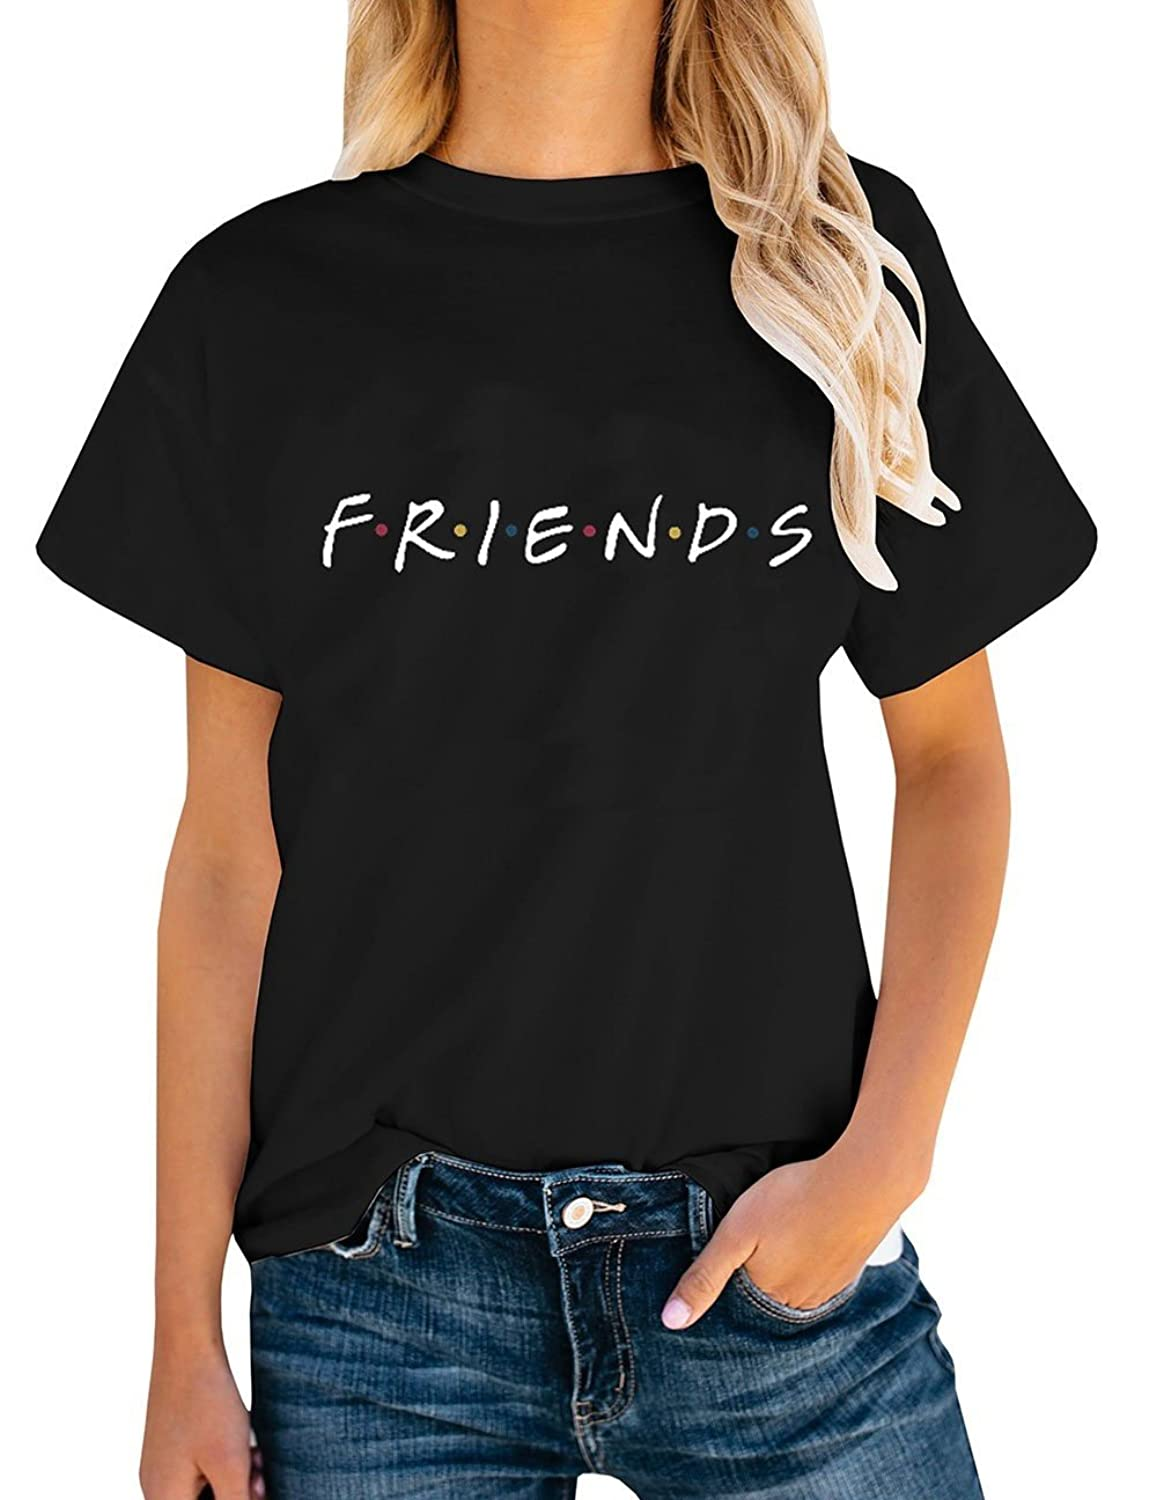 12379bc7 100% Cotton tshirt, Cotton Blend Sweatshirt, Comfortable, Breathable,  Stretch ,Lightweight and Cool To Wear In Spring, Summer and Fall . Cute  Friends Print ...